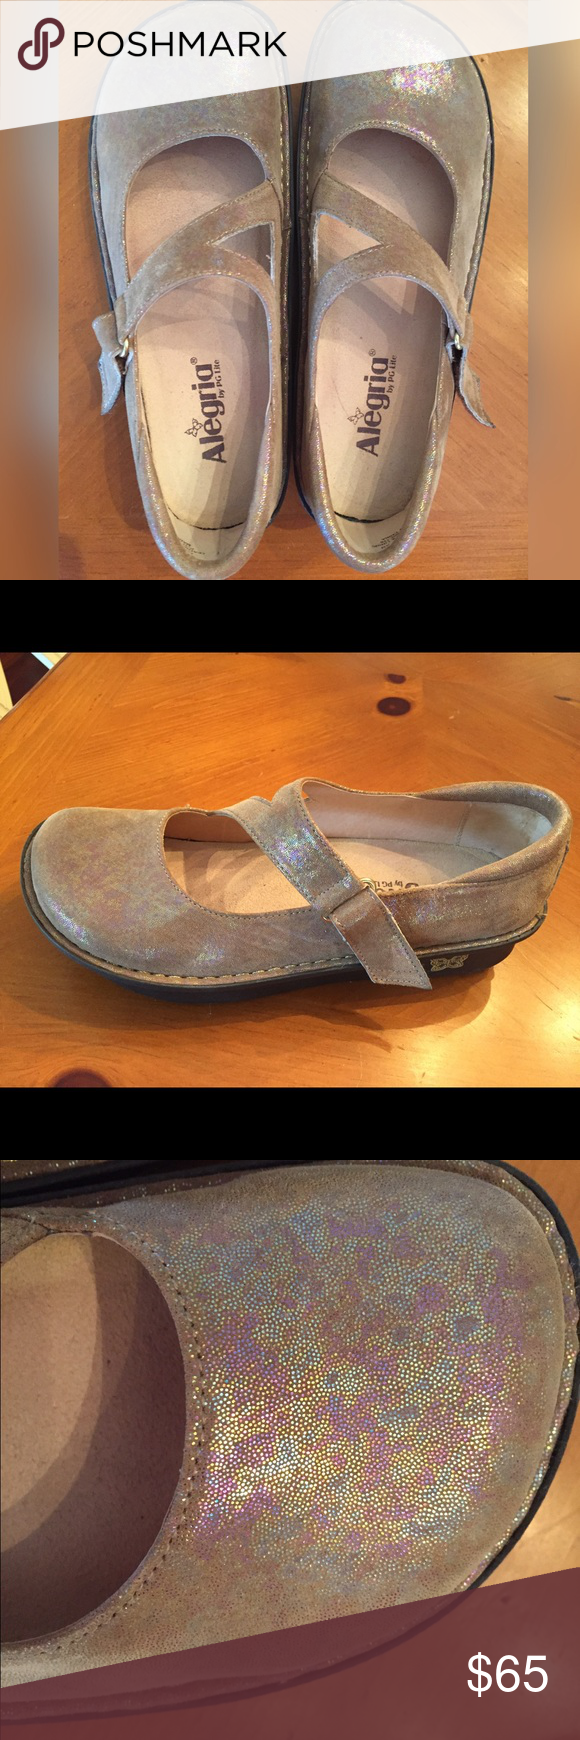 Allegria Shoes Gold Size 9 (39 European)   D, Gov't mule and Clogs